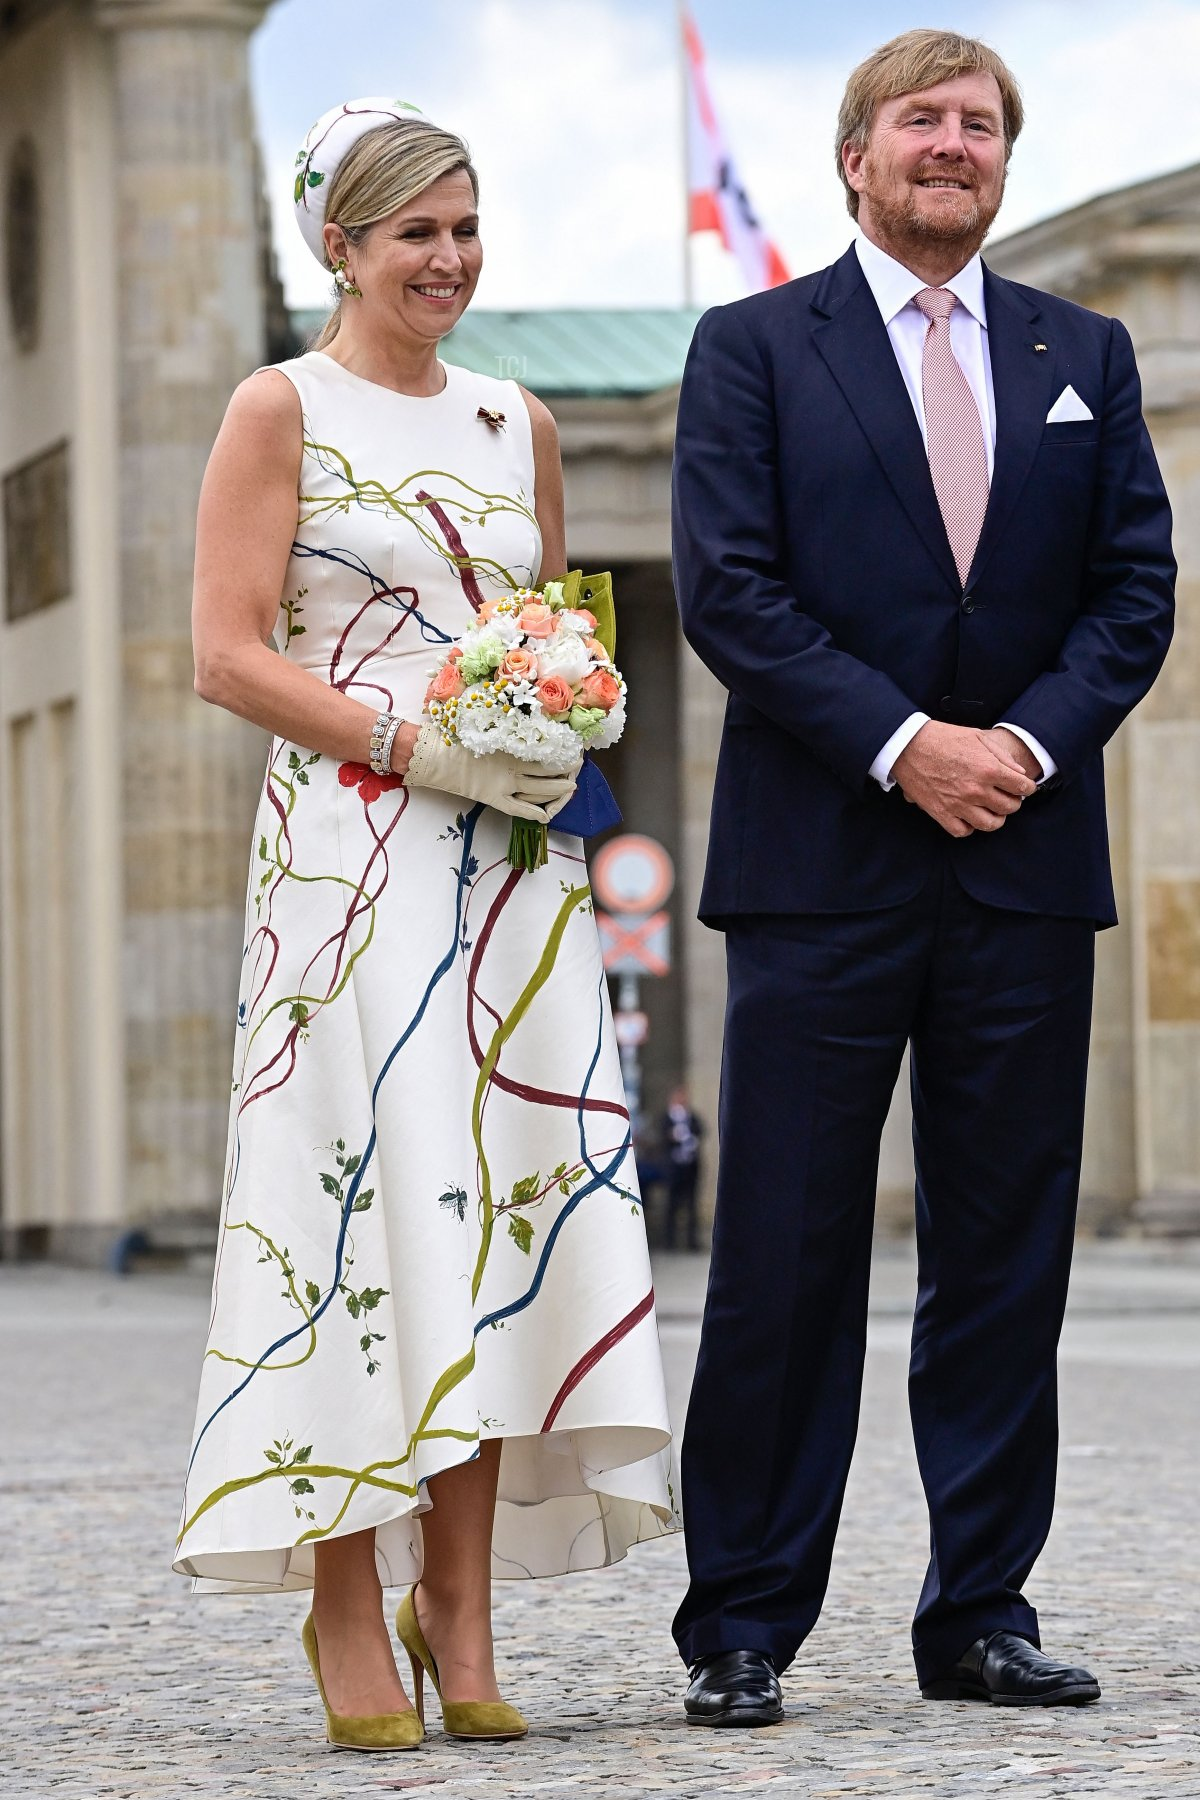 King Willem-Alexander and Queen Maxima of the Netherlands pose for photos in front of the landmark Brandenburg Gate in Berlin on July 5, 2021